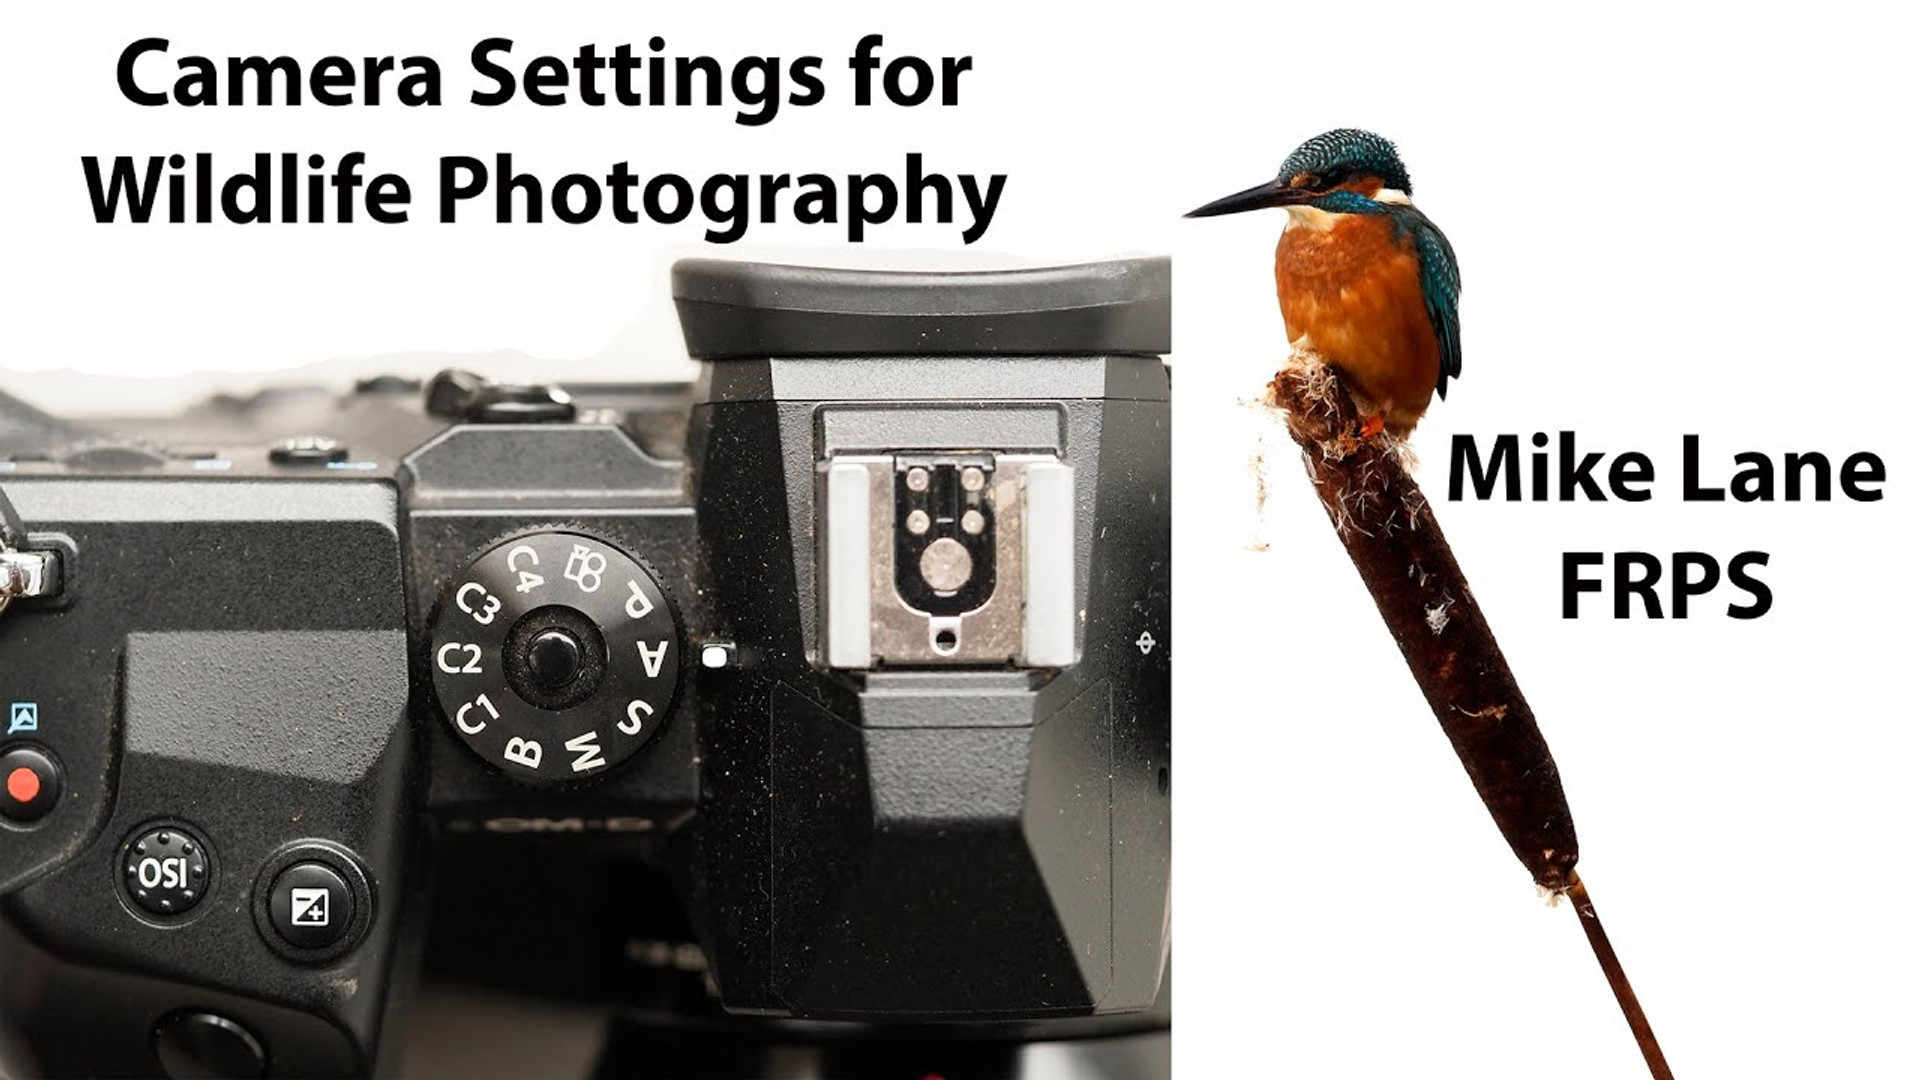 Camera Settings for Wildlife Photography